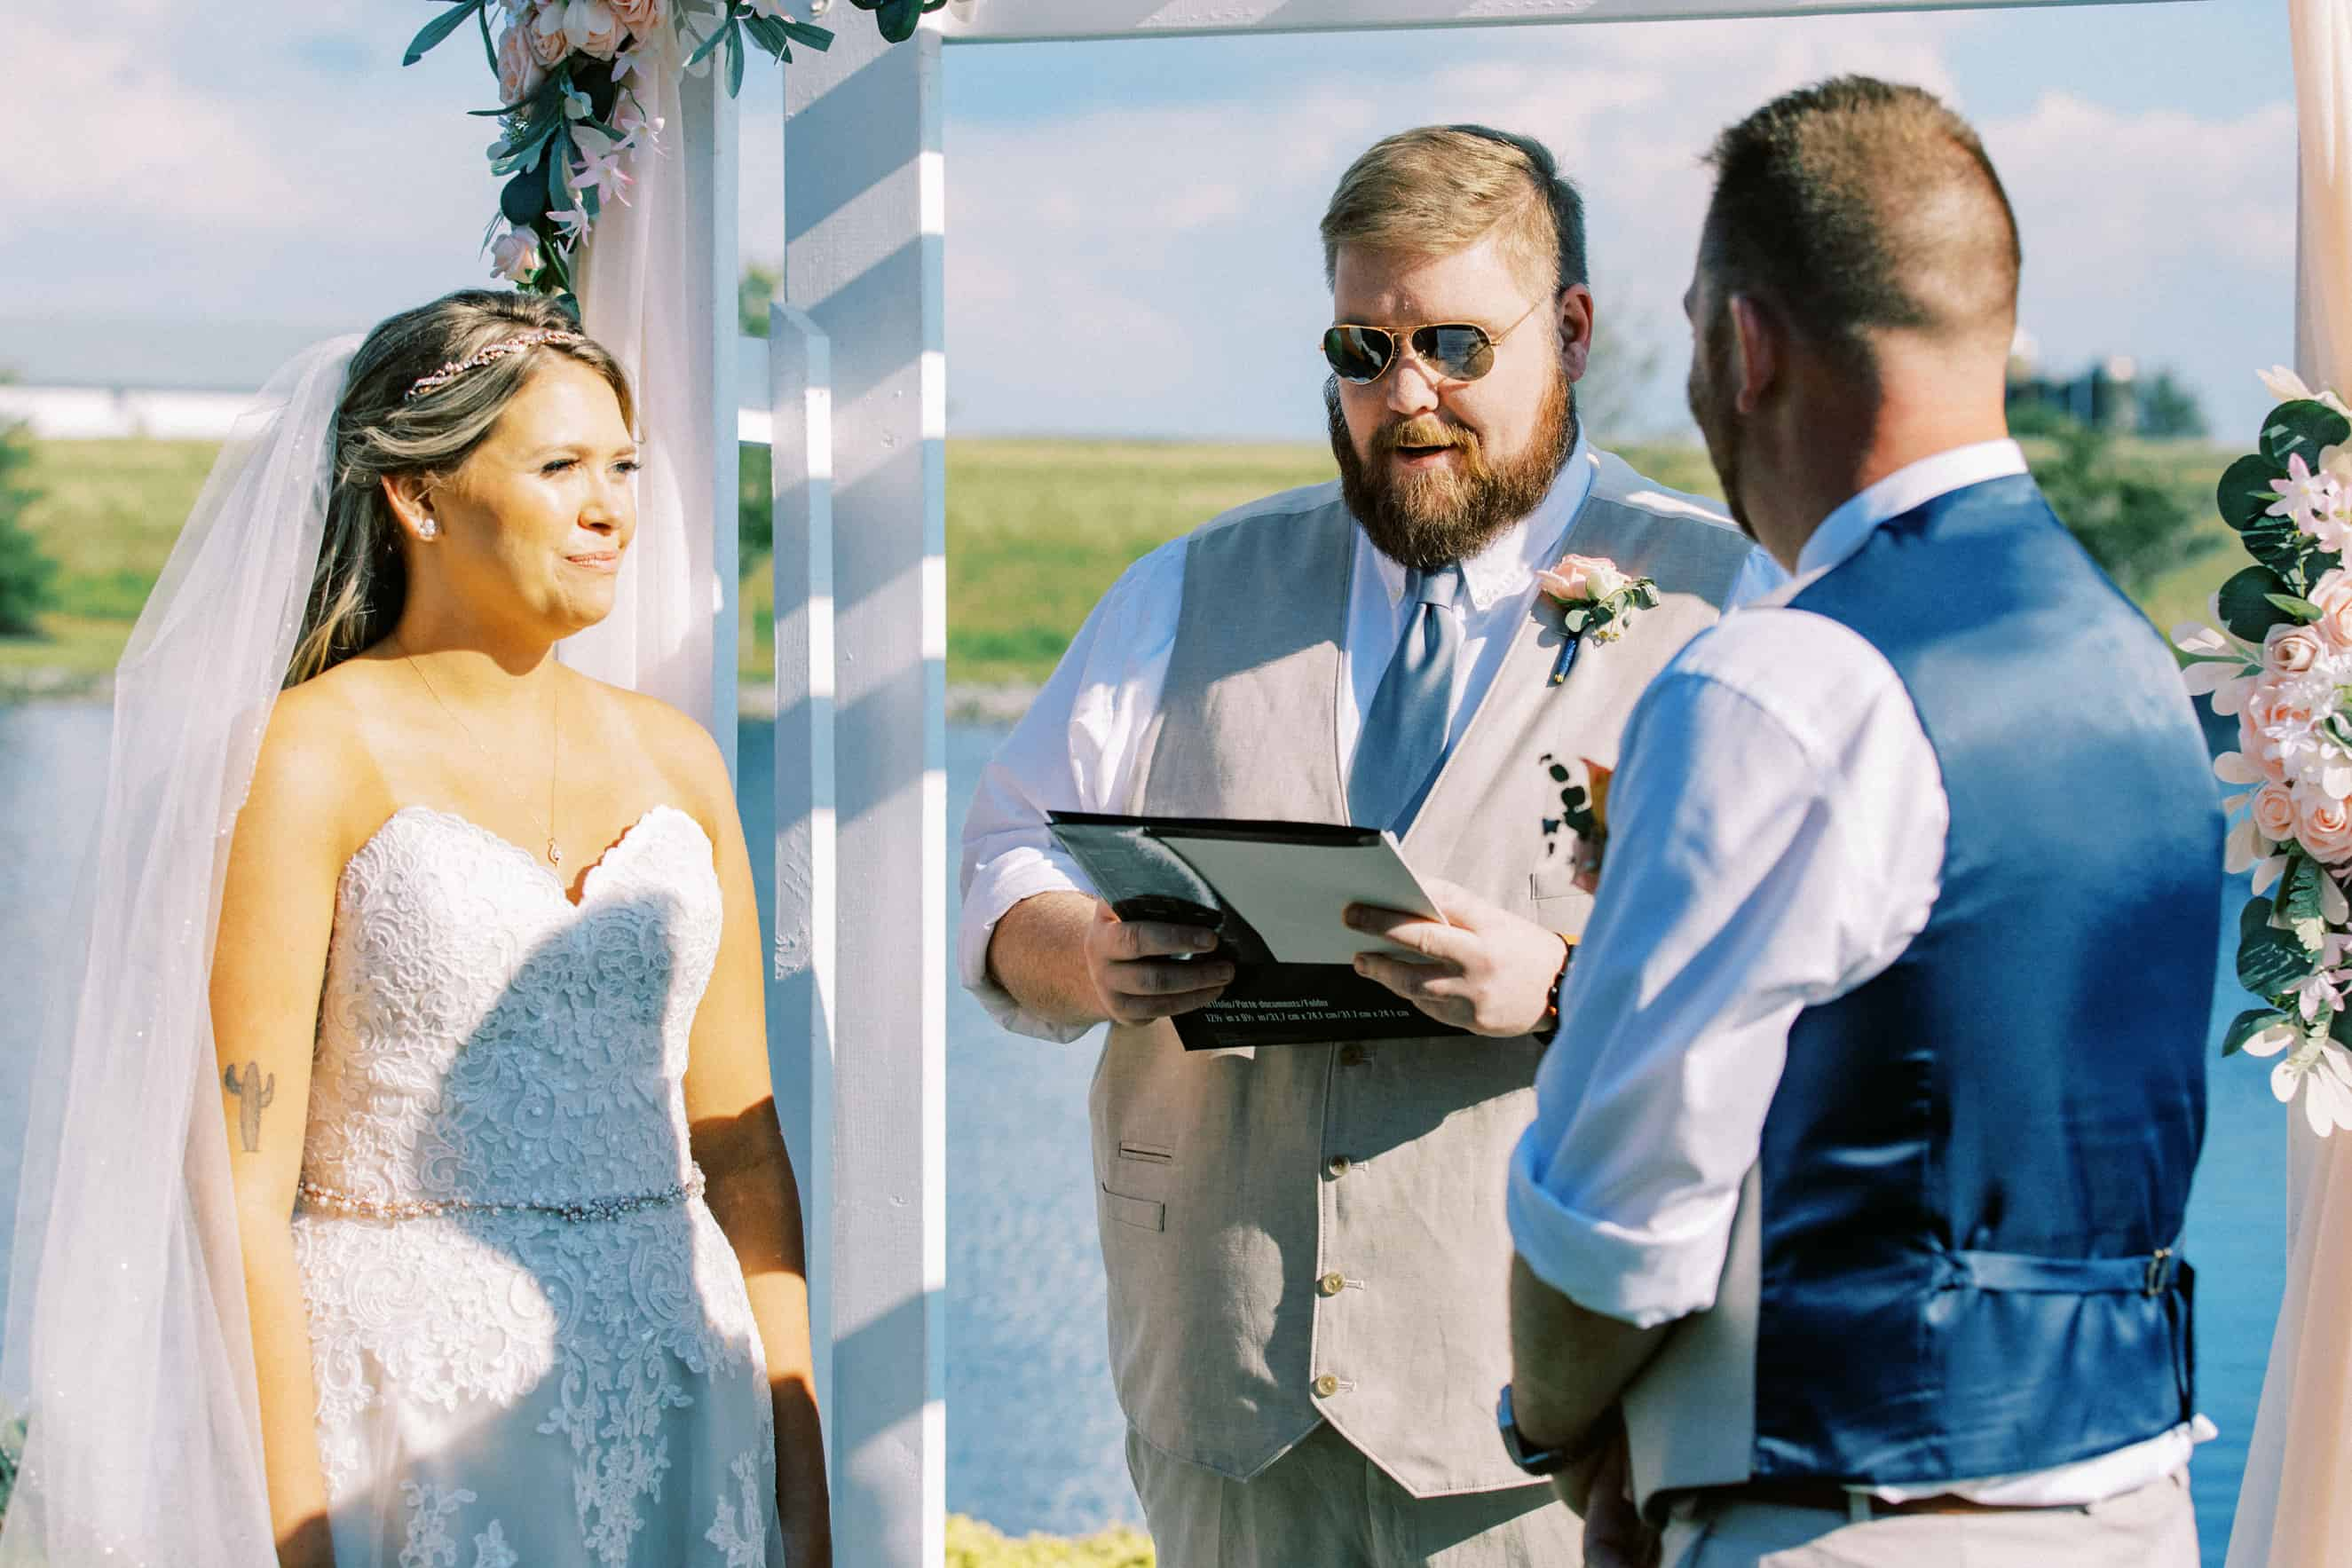 Outdoor wedding ceremony Harvest View Barn at Hershey Farms